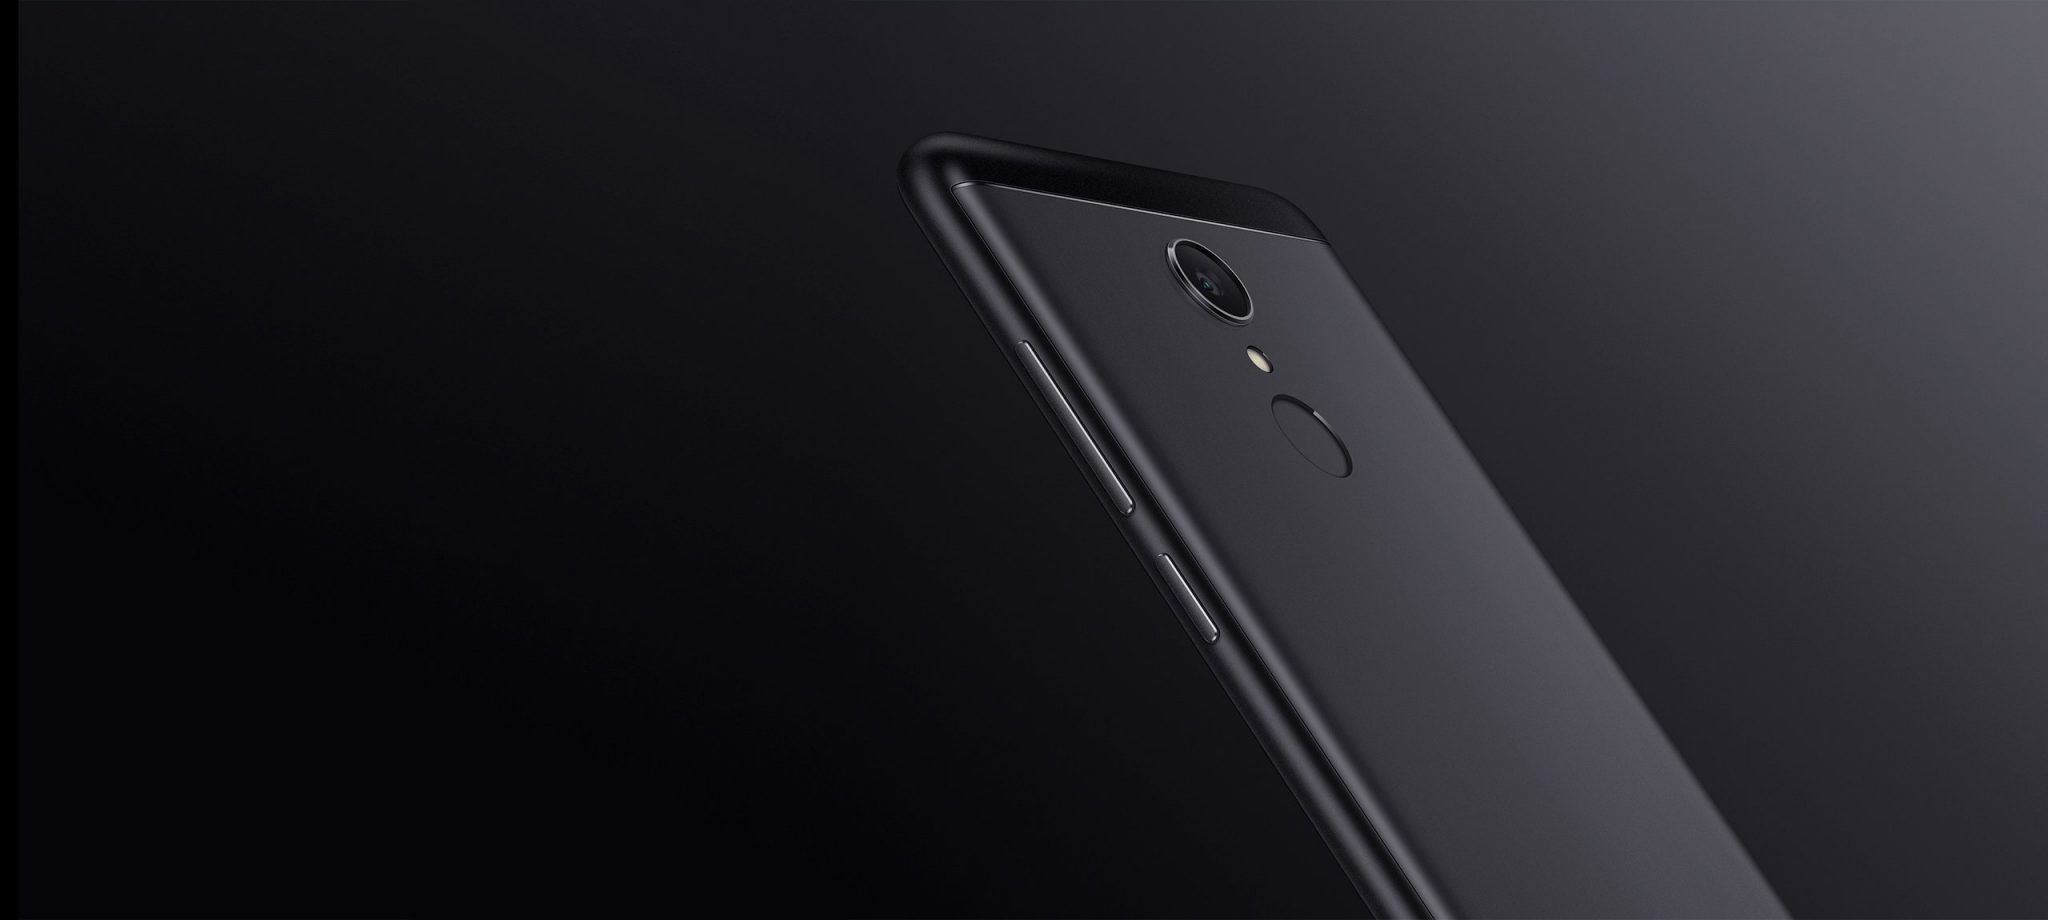 Xiaomi Redmi 5 launched in India in three variants, price starts at ₹7999 5